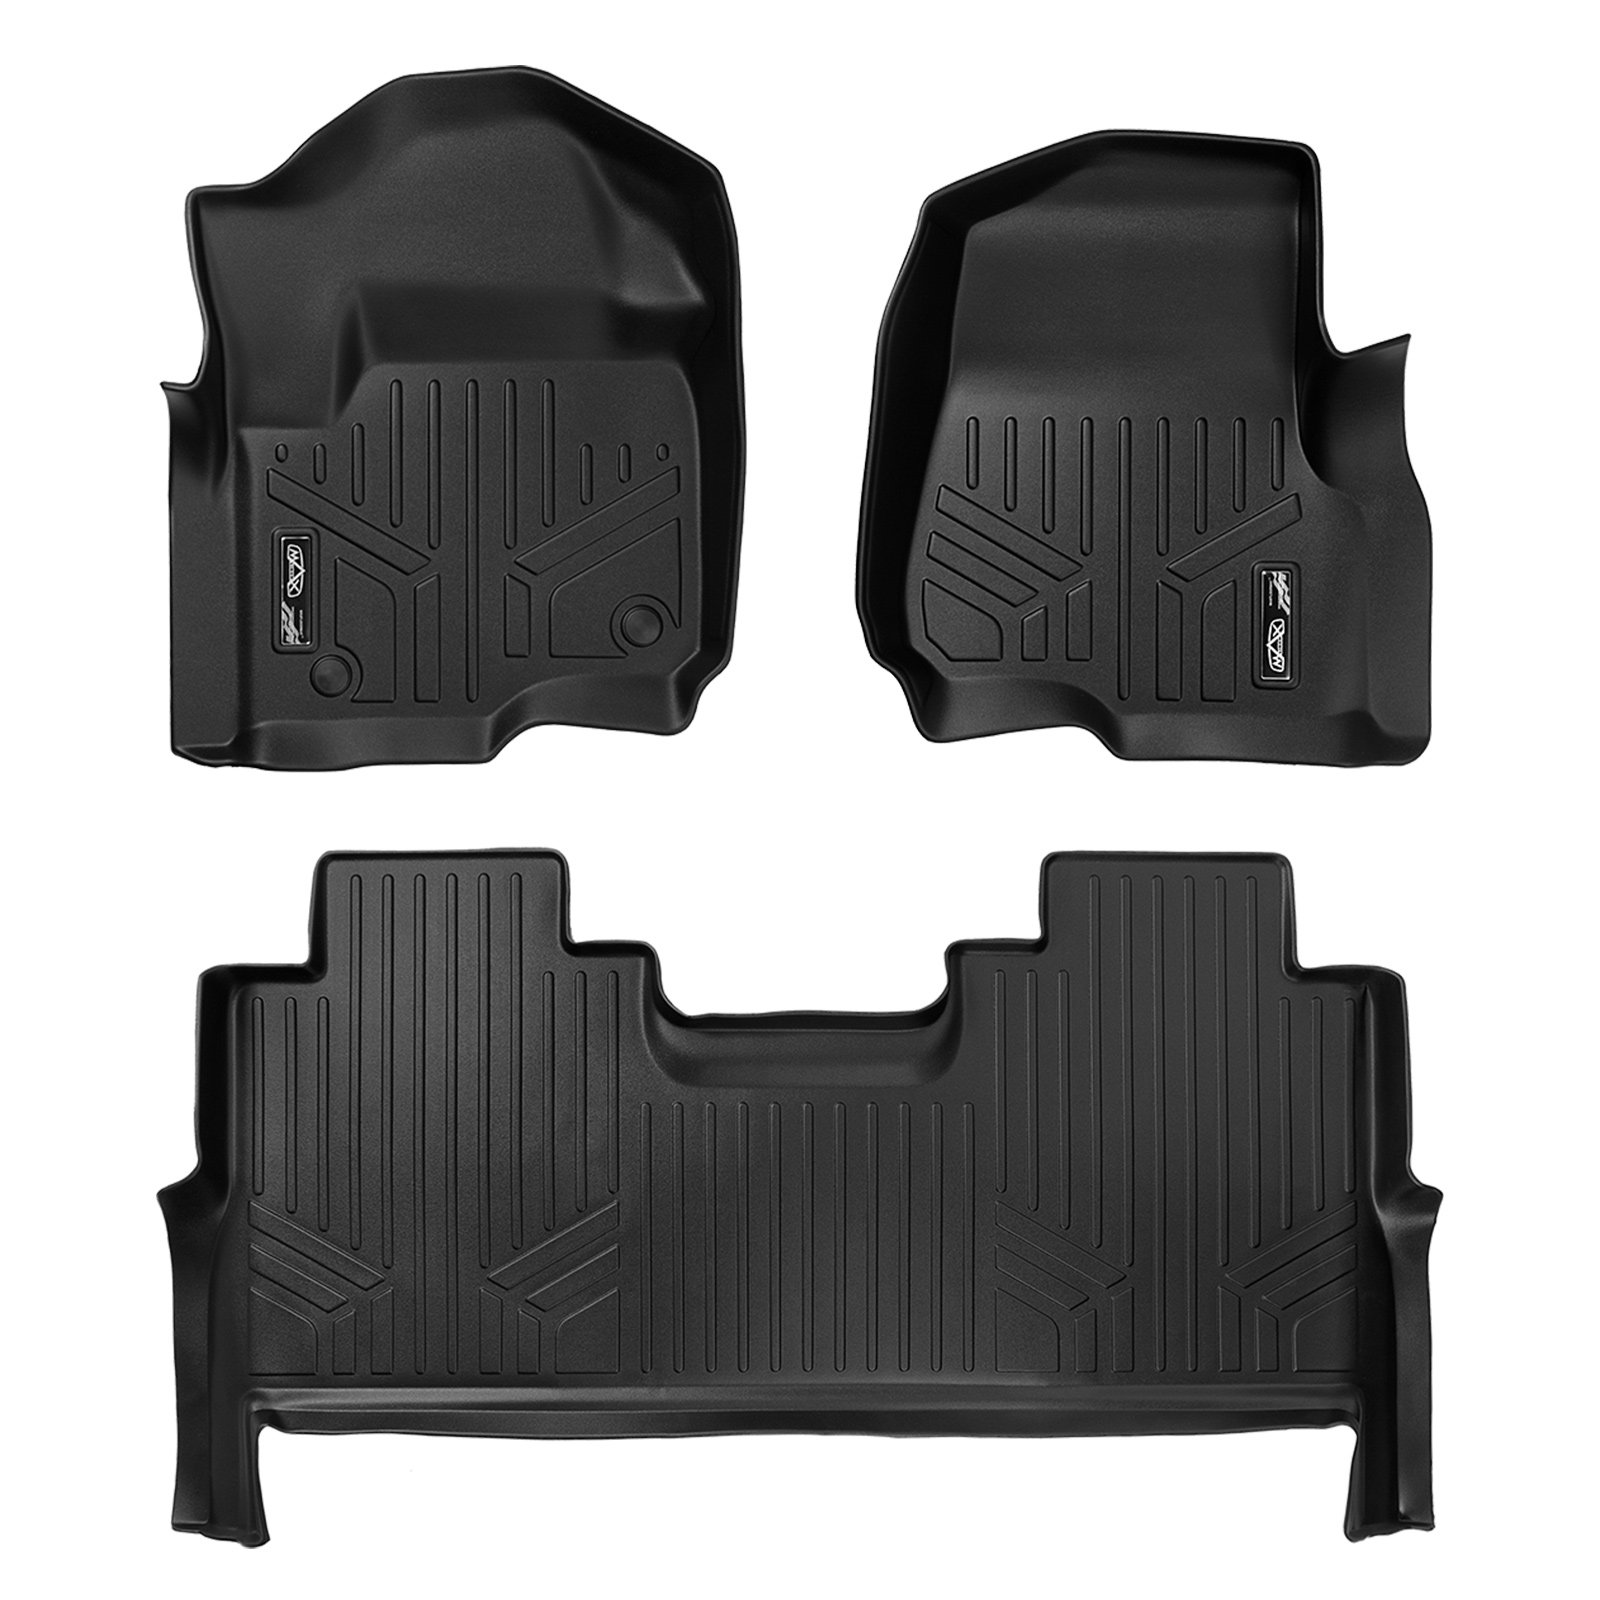 SMARTLINER Floor Mats 2 Row Liner Set Black for 2017-2019 Ford F-250/F-350 Super Duty Crew Cab with 1st Row Bucket Seats